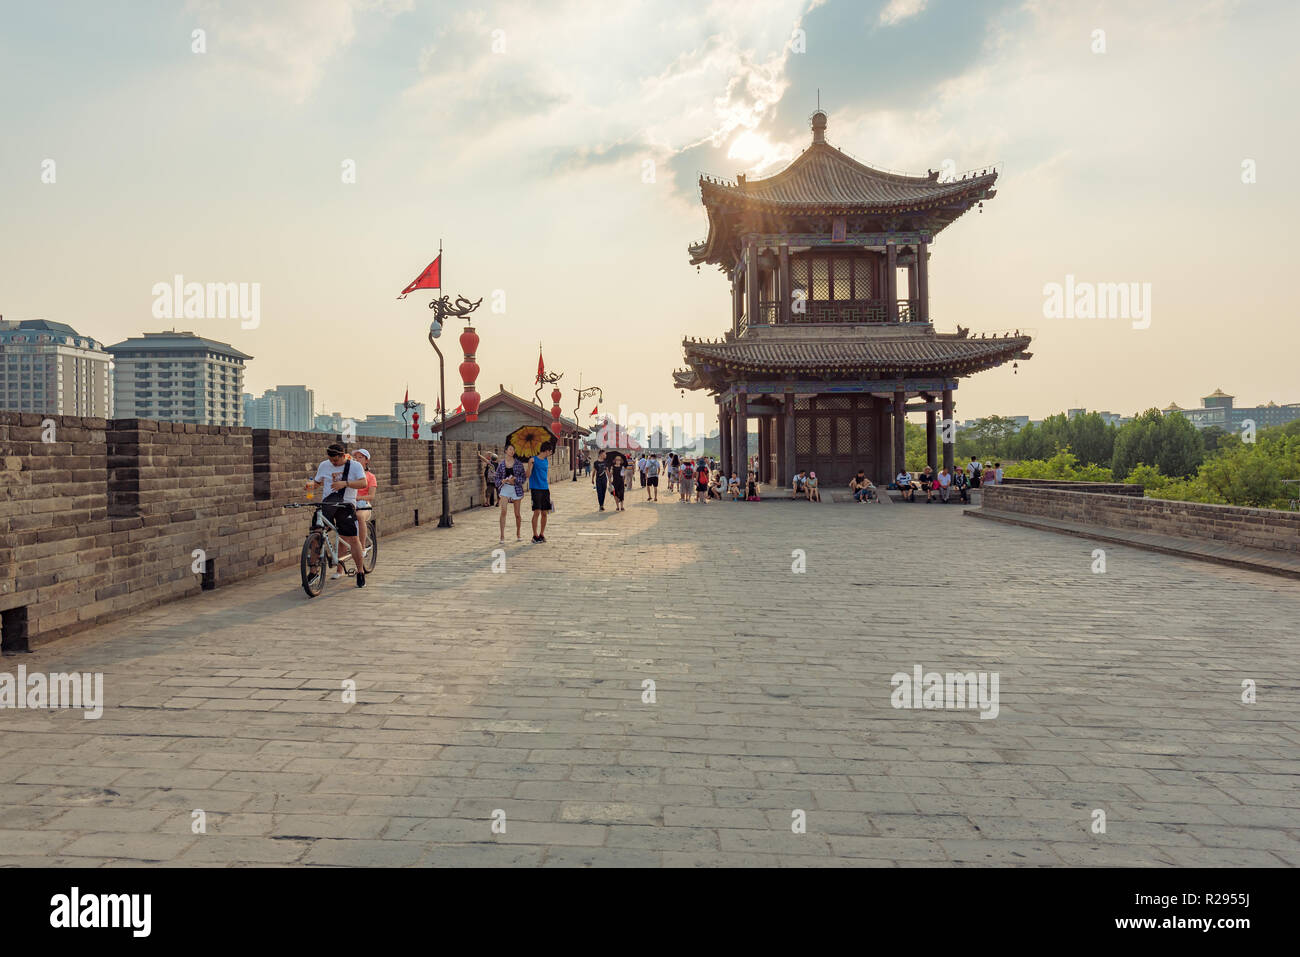 Xi'an, Shaanxi province, China - Aug 8, 2018 : People walking and riding bicycle on the city fortified wall in late afternoon - Stock Image